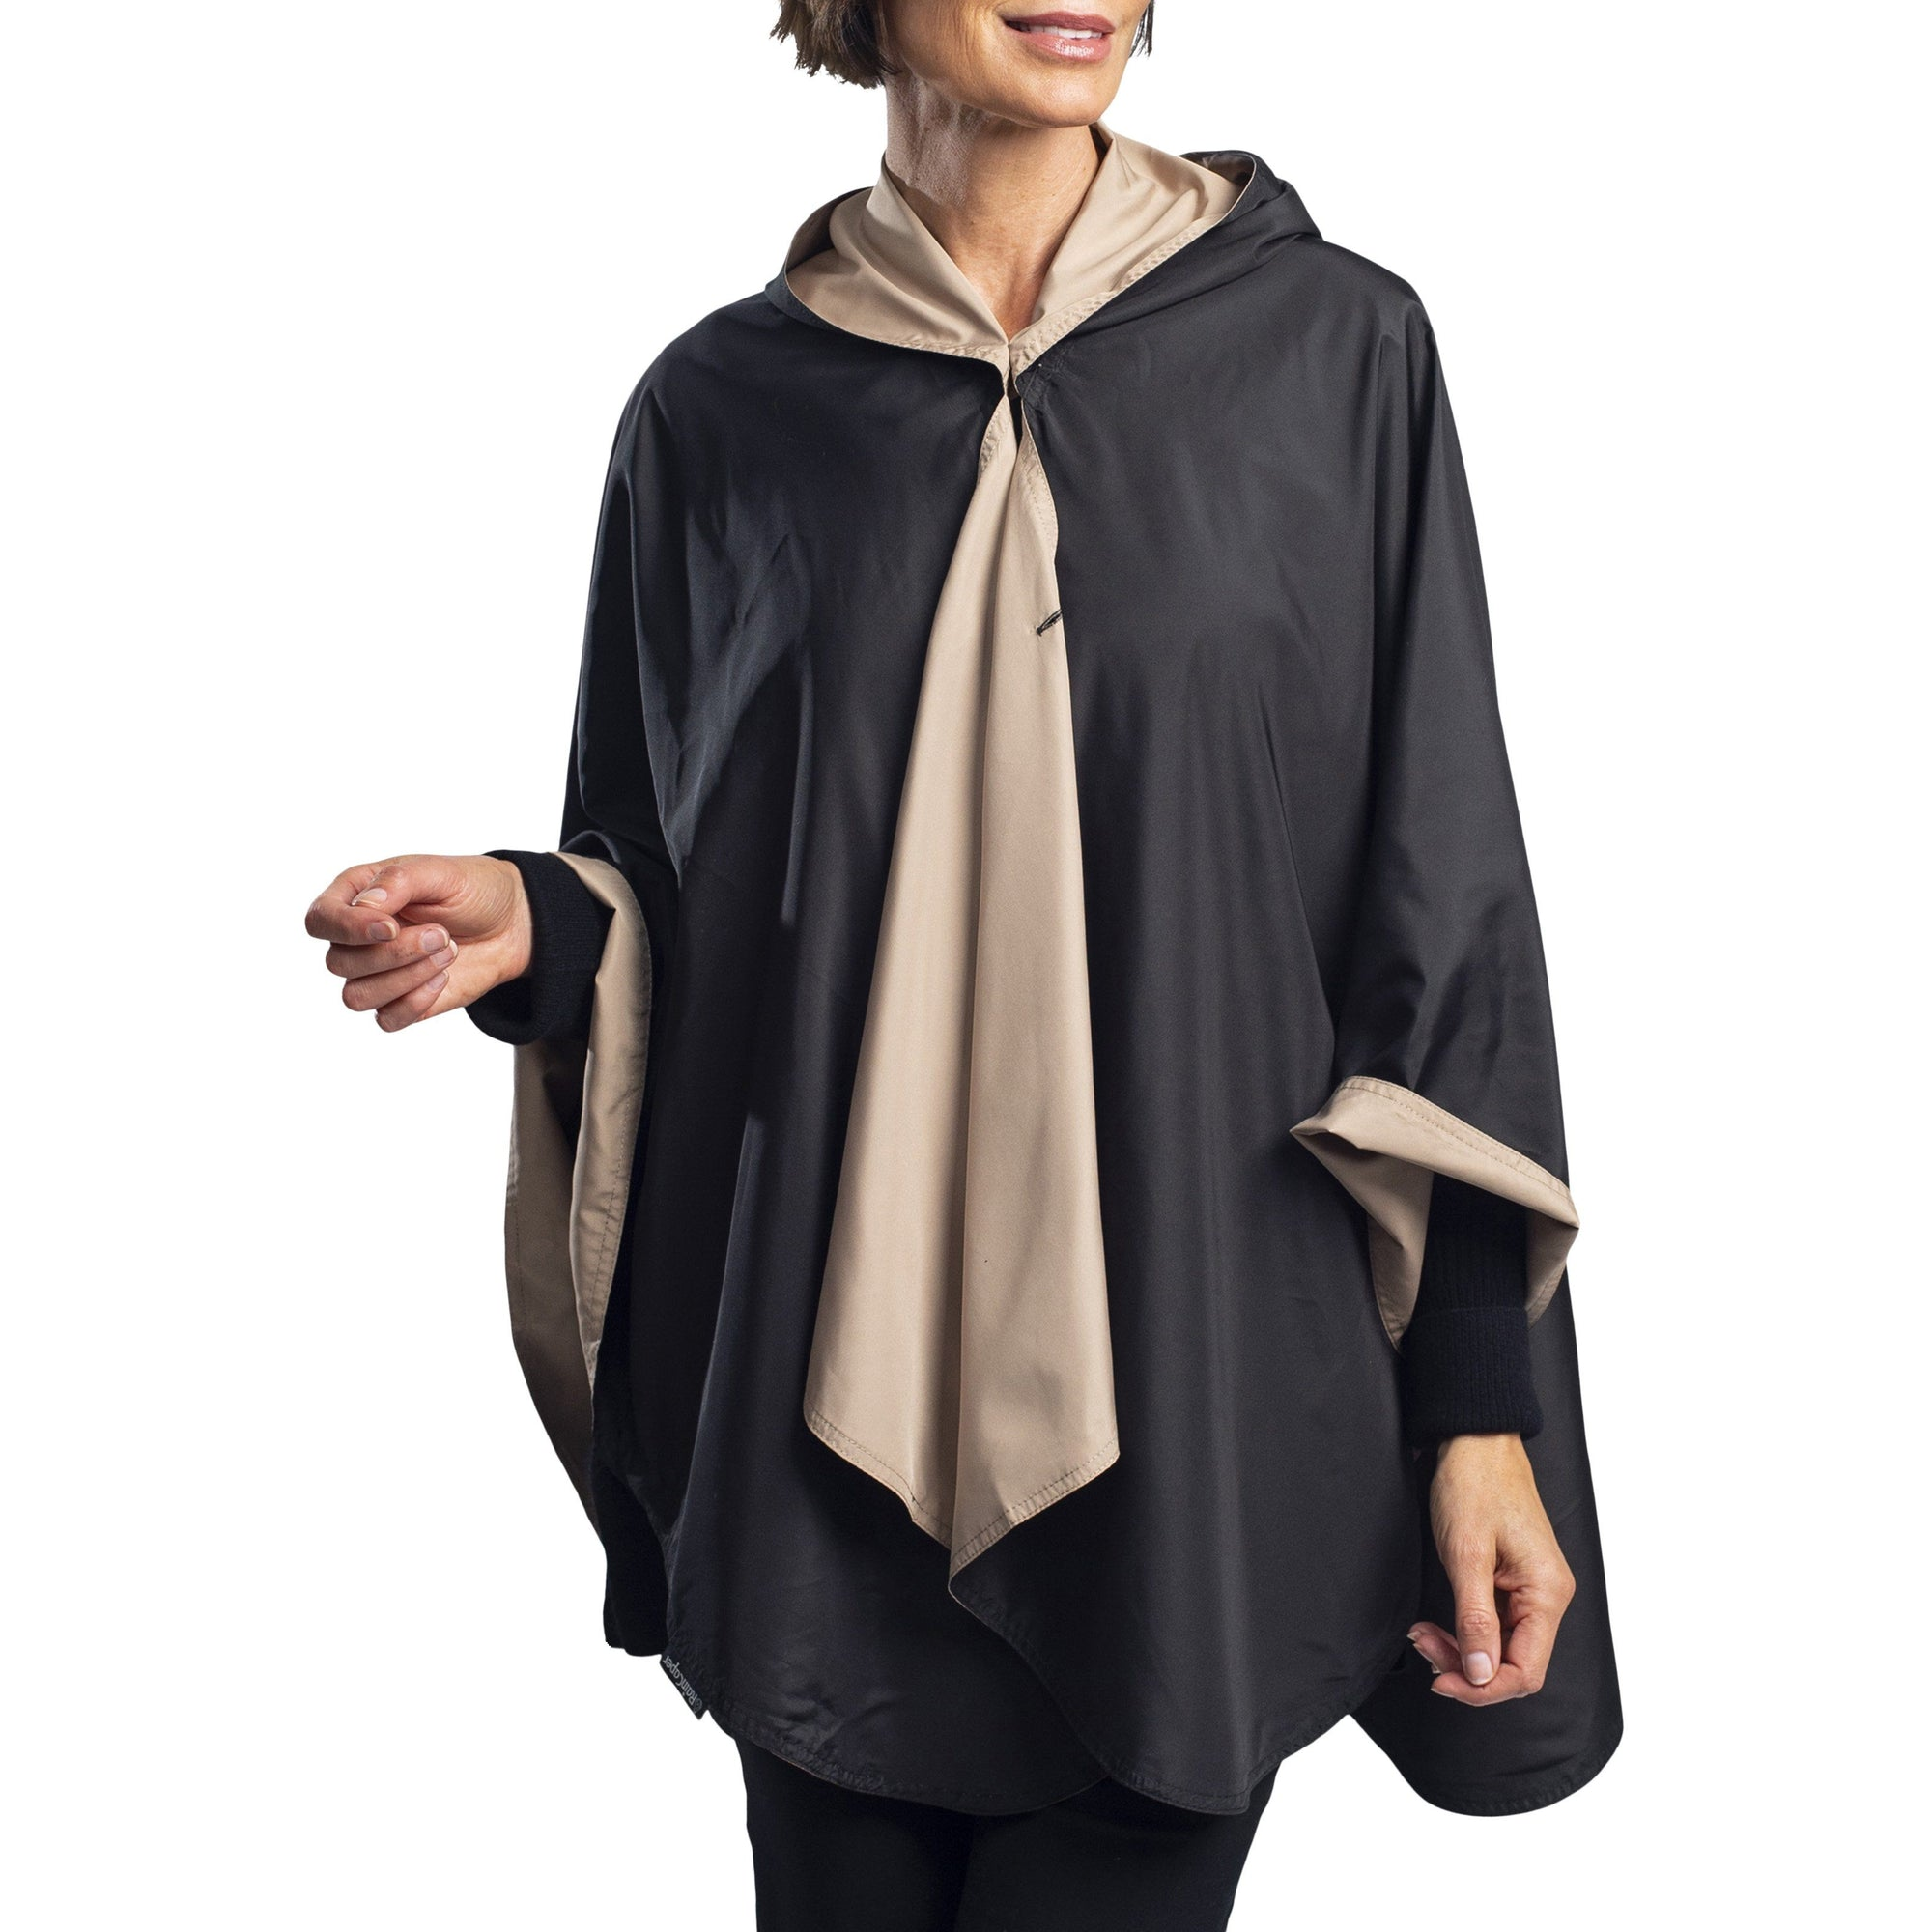 Women wearing a Black & Camel Reversible RainCaper travel cape with the Black side out, revealing the Camel color at the lapels and cuffs.